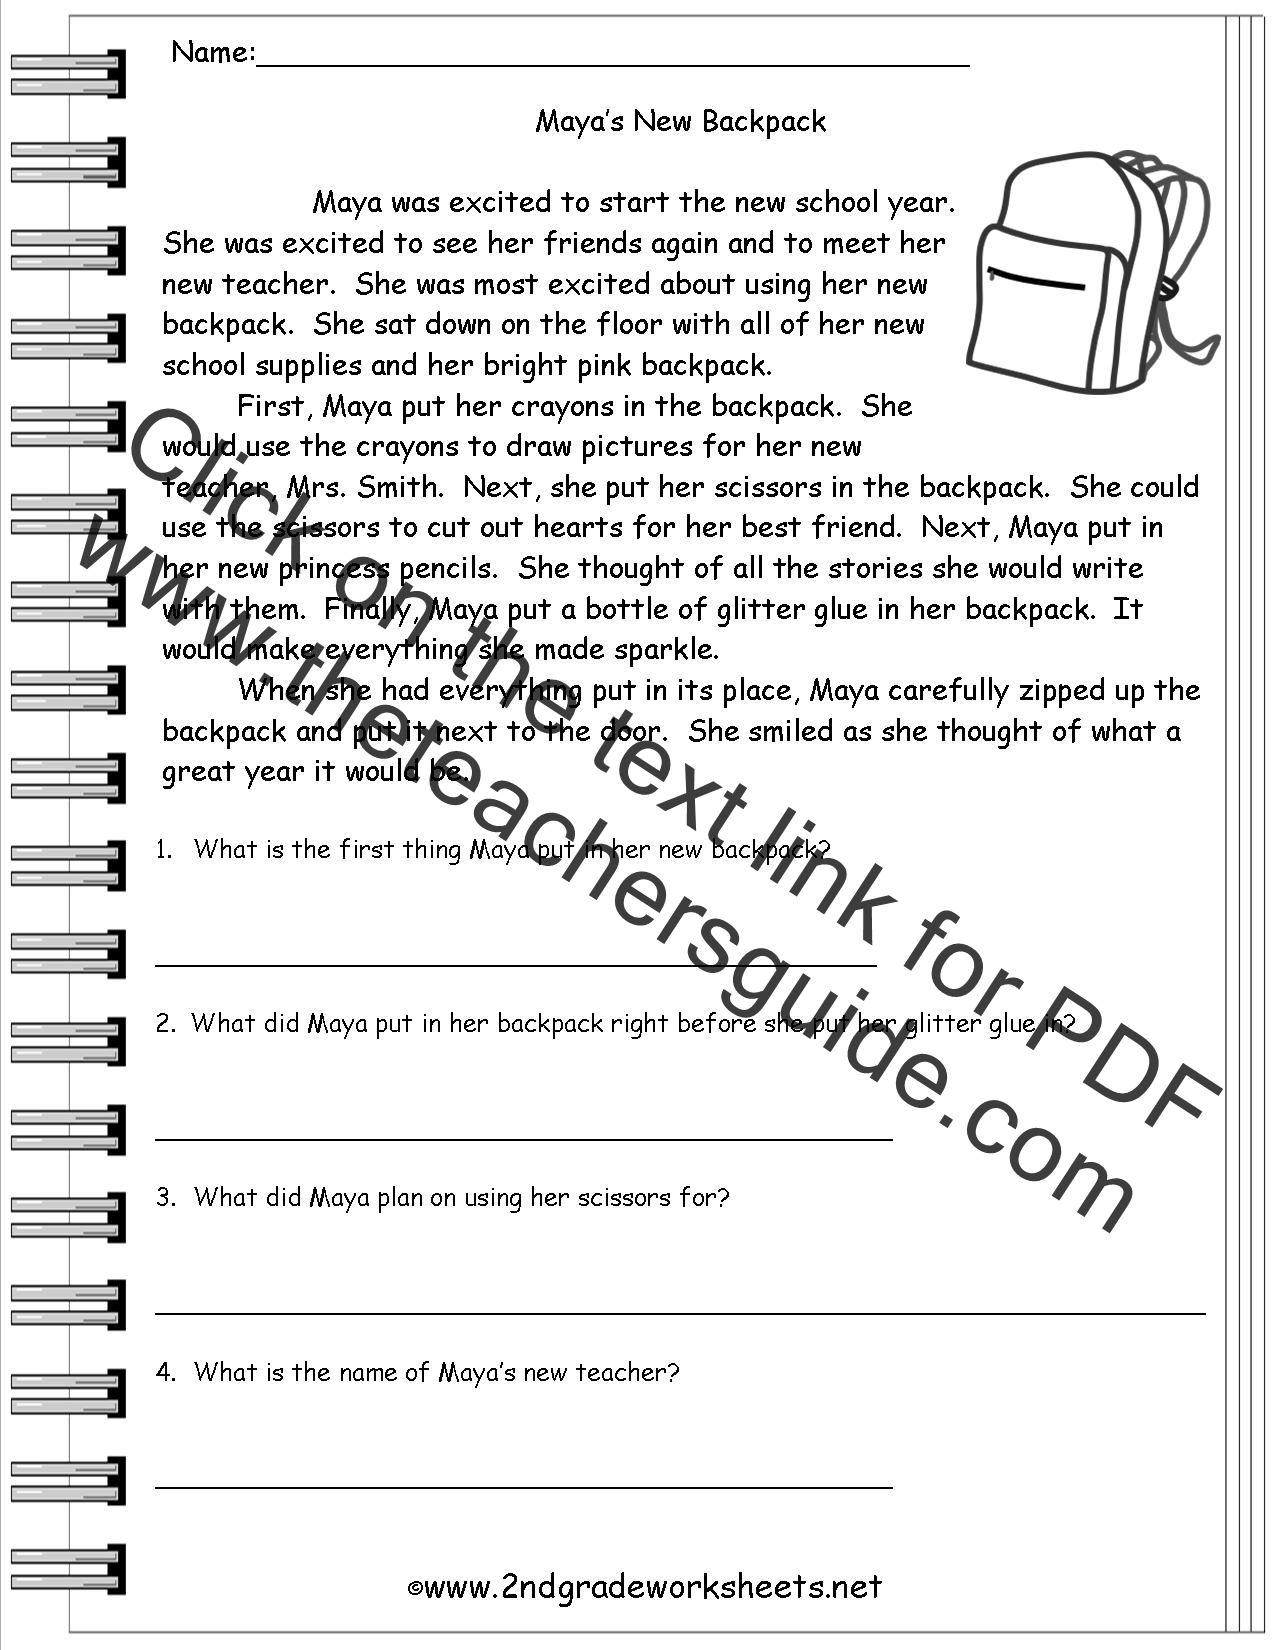 Worksheets Second Grade Reading Comprehension Worksheets Free reading worksheeets worksheets